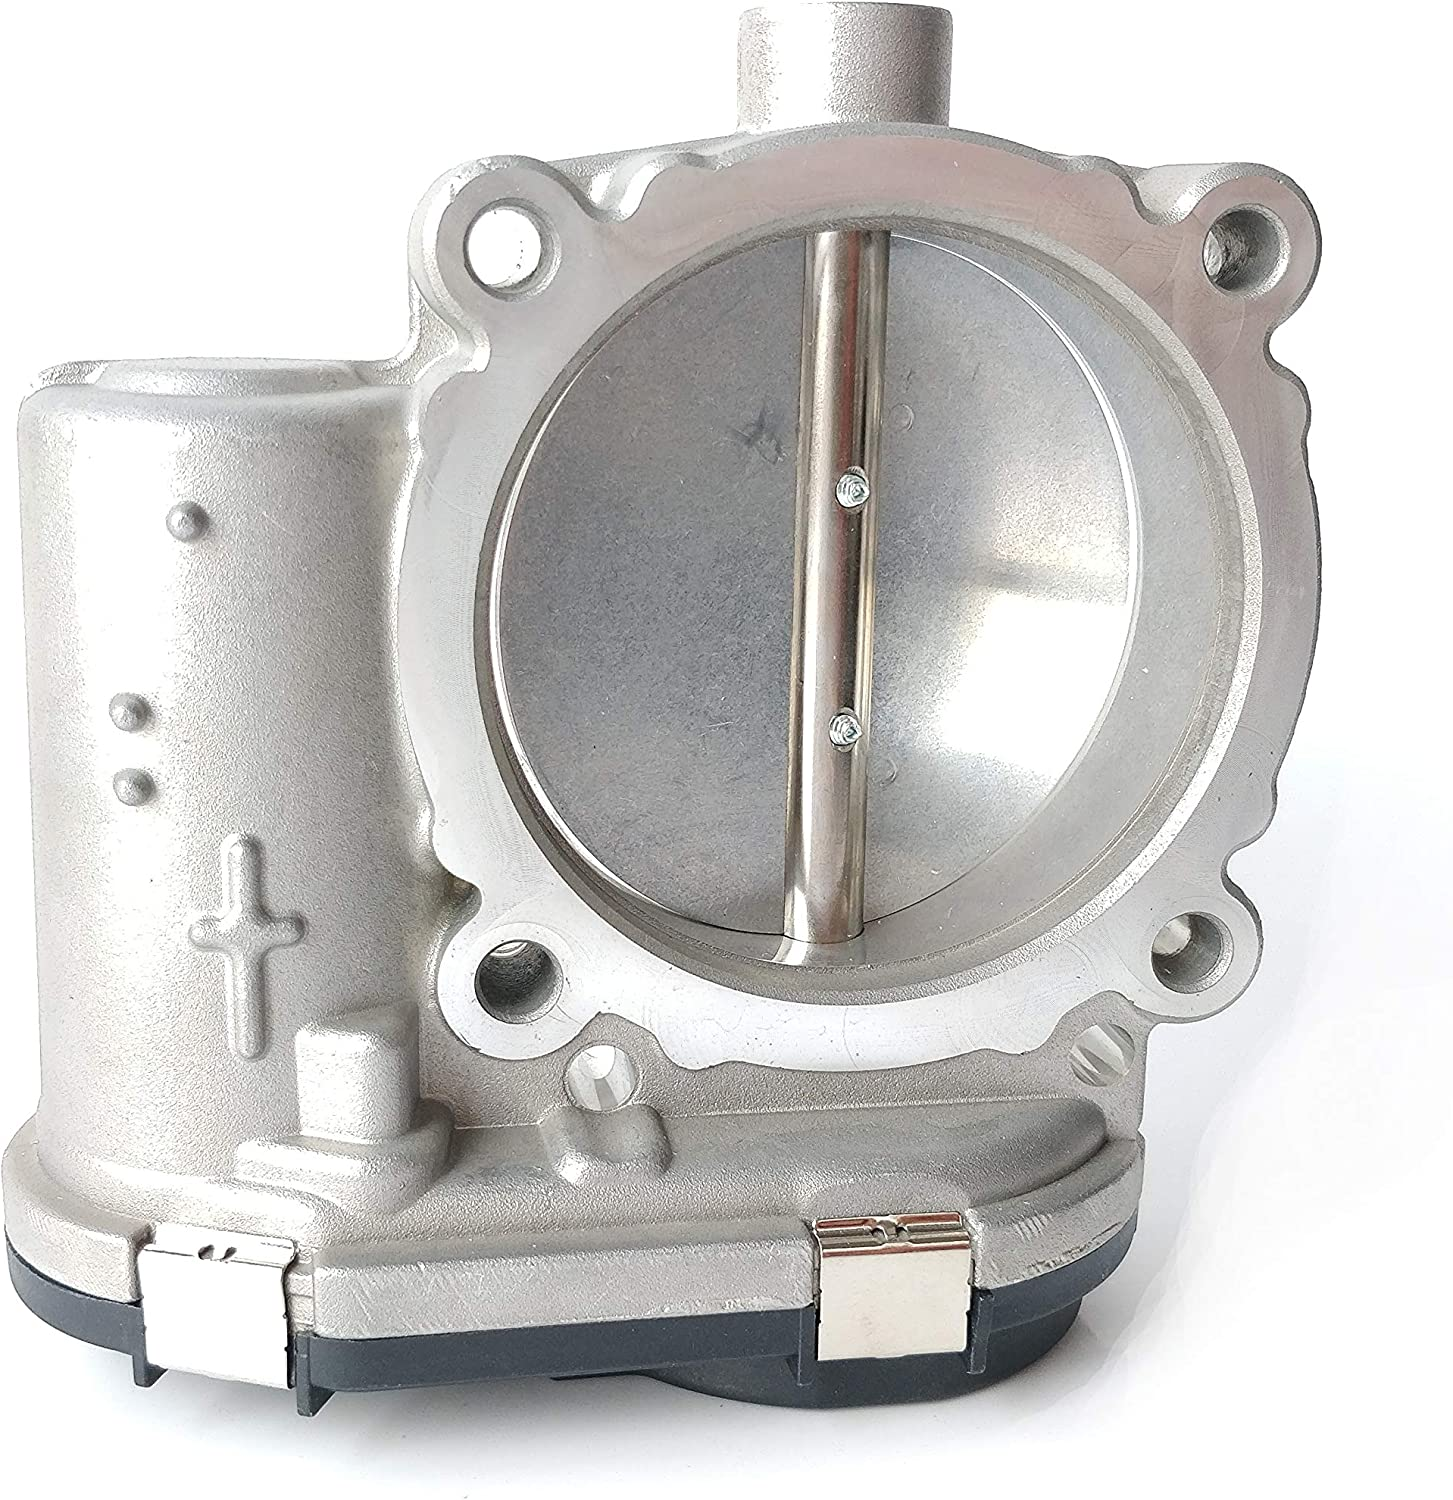 Part# 5184349AC Throttle Body for Dodge Challenger Charger Journey Avenger 200 300 Pacifica Town /& Country Jeep Grand Cherokee Wrangler Ram 1500 3.2L 3.6L